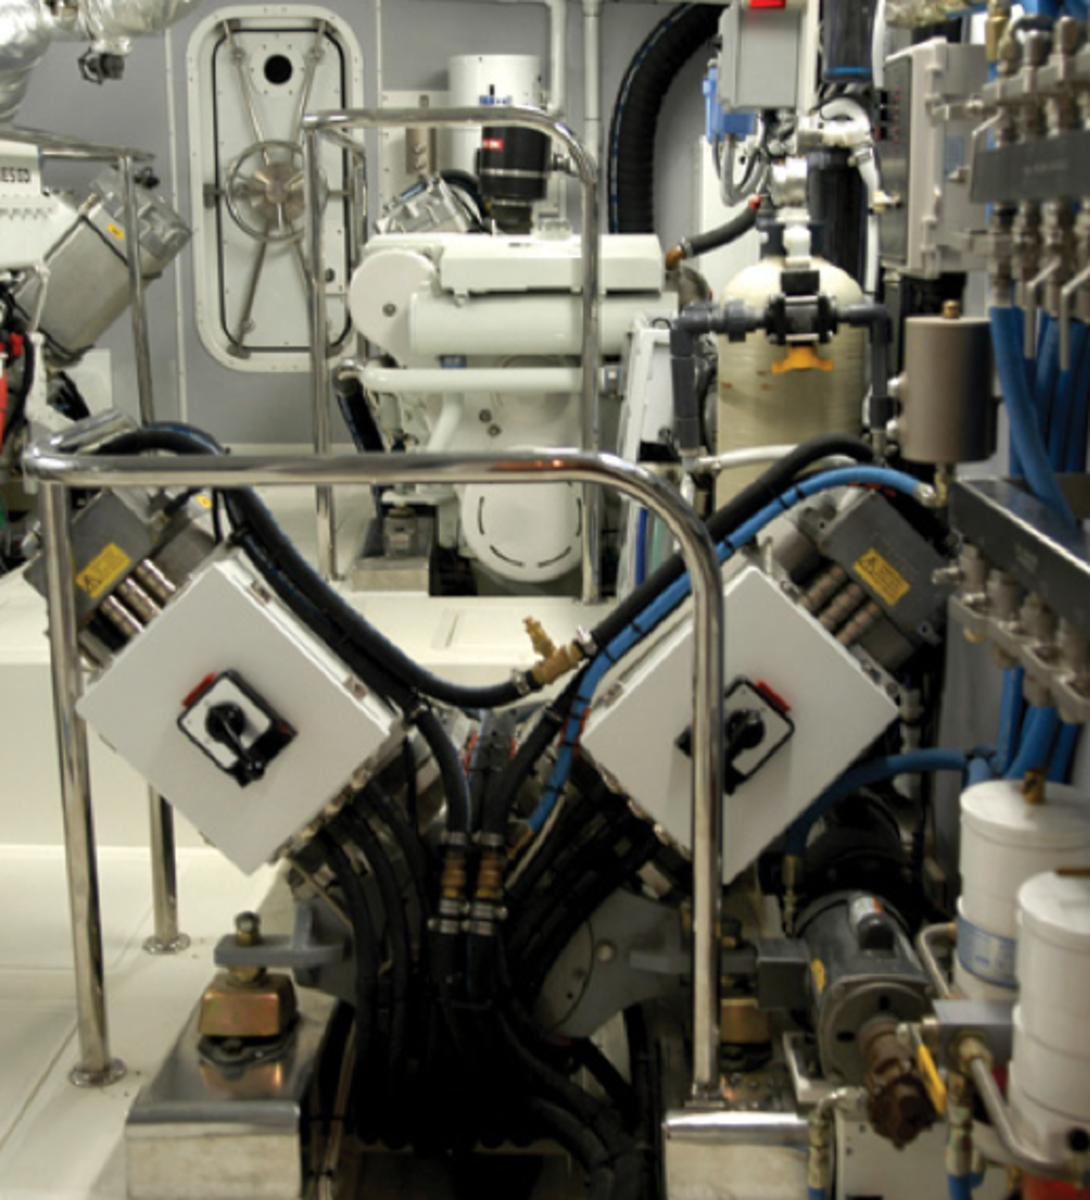 A serial hybrid installation on a large trawler yacht. In the foreground are two electric motors driving the propeller shaft; in the background is the generator that powers the electric motors. This system suffered from teething problems and was subsequently replaced with a conventional installation.